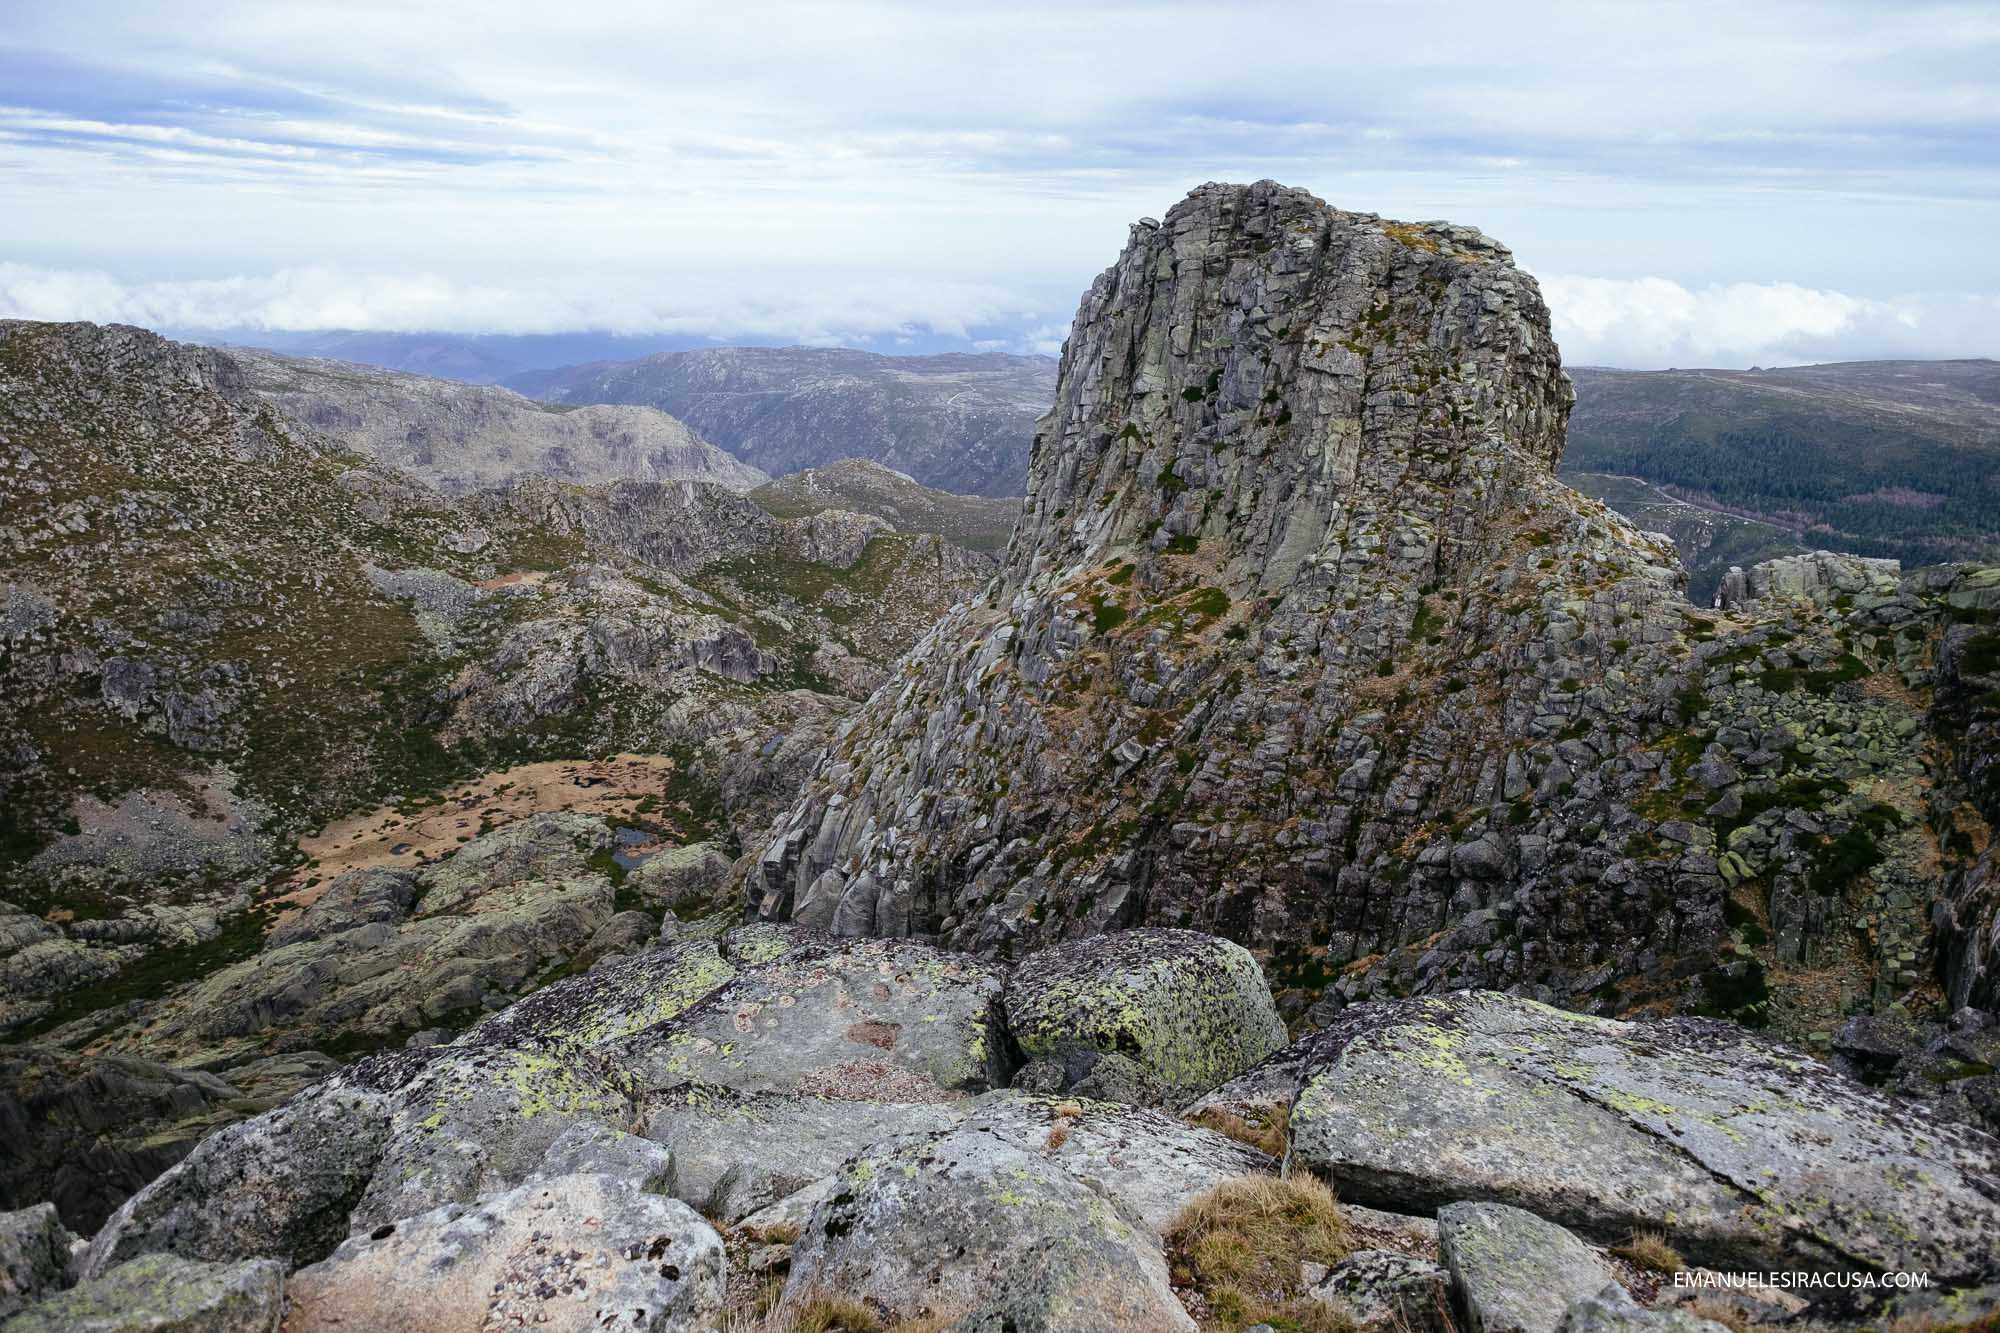 Cantaro Magro, one of the most iconic rock formations in Serra da Estrela